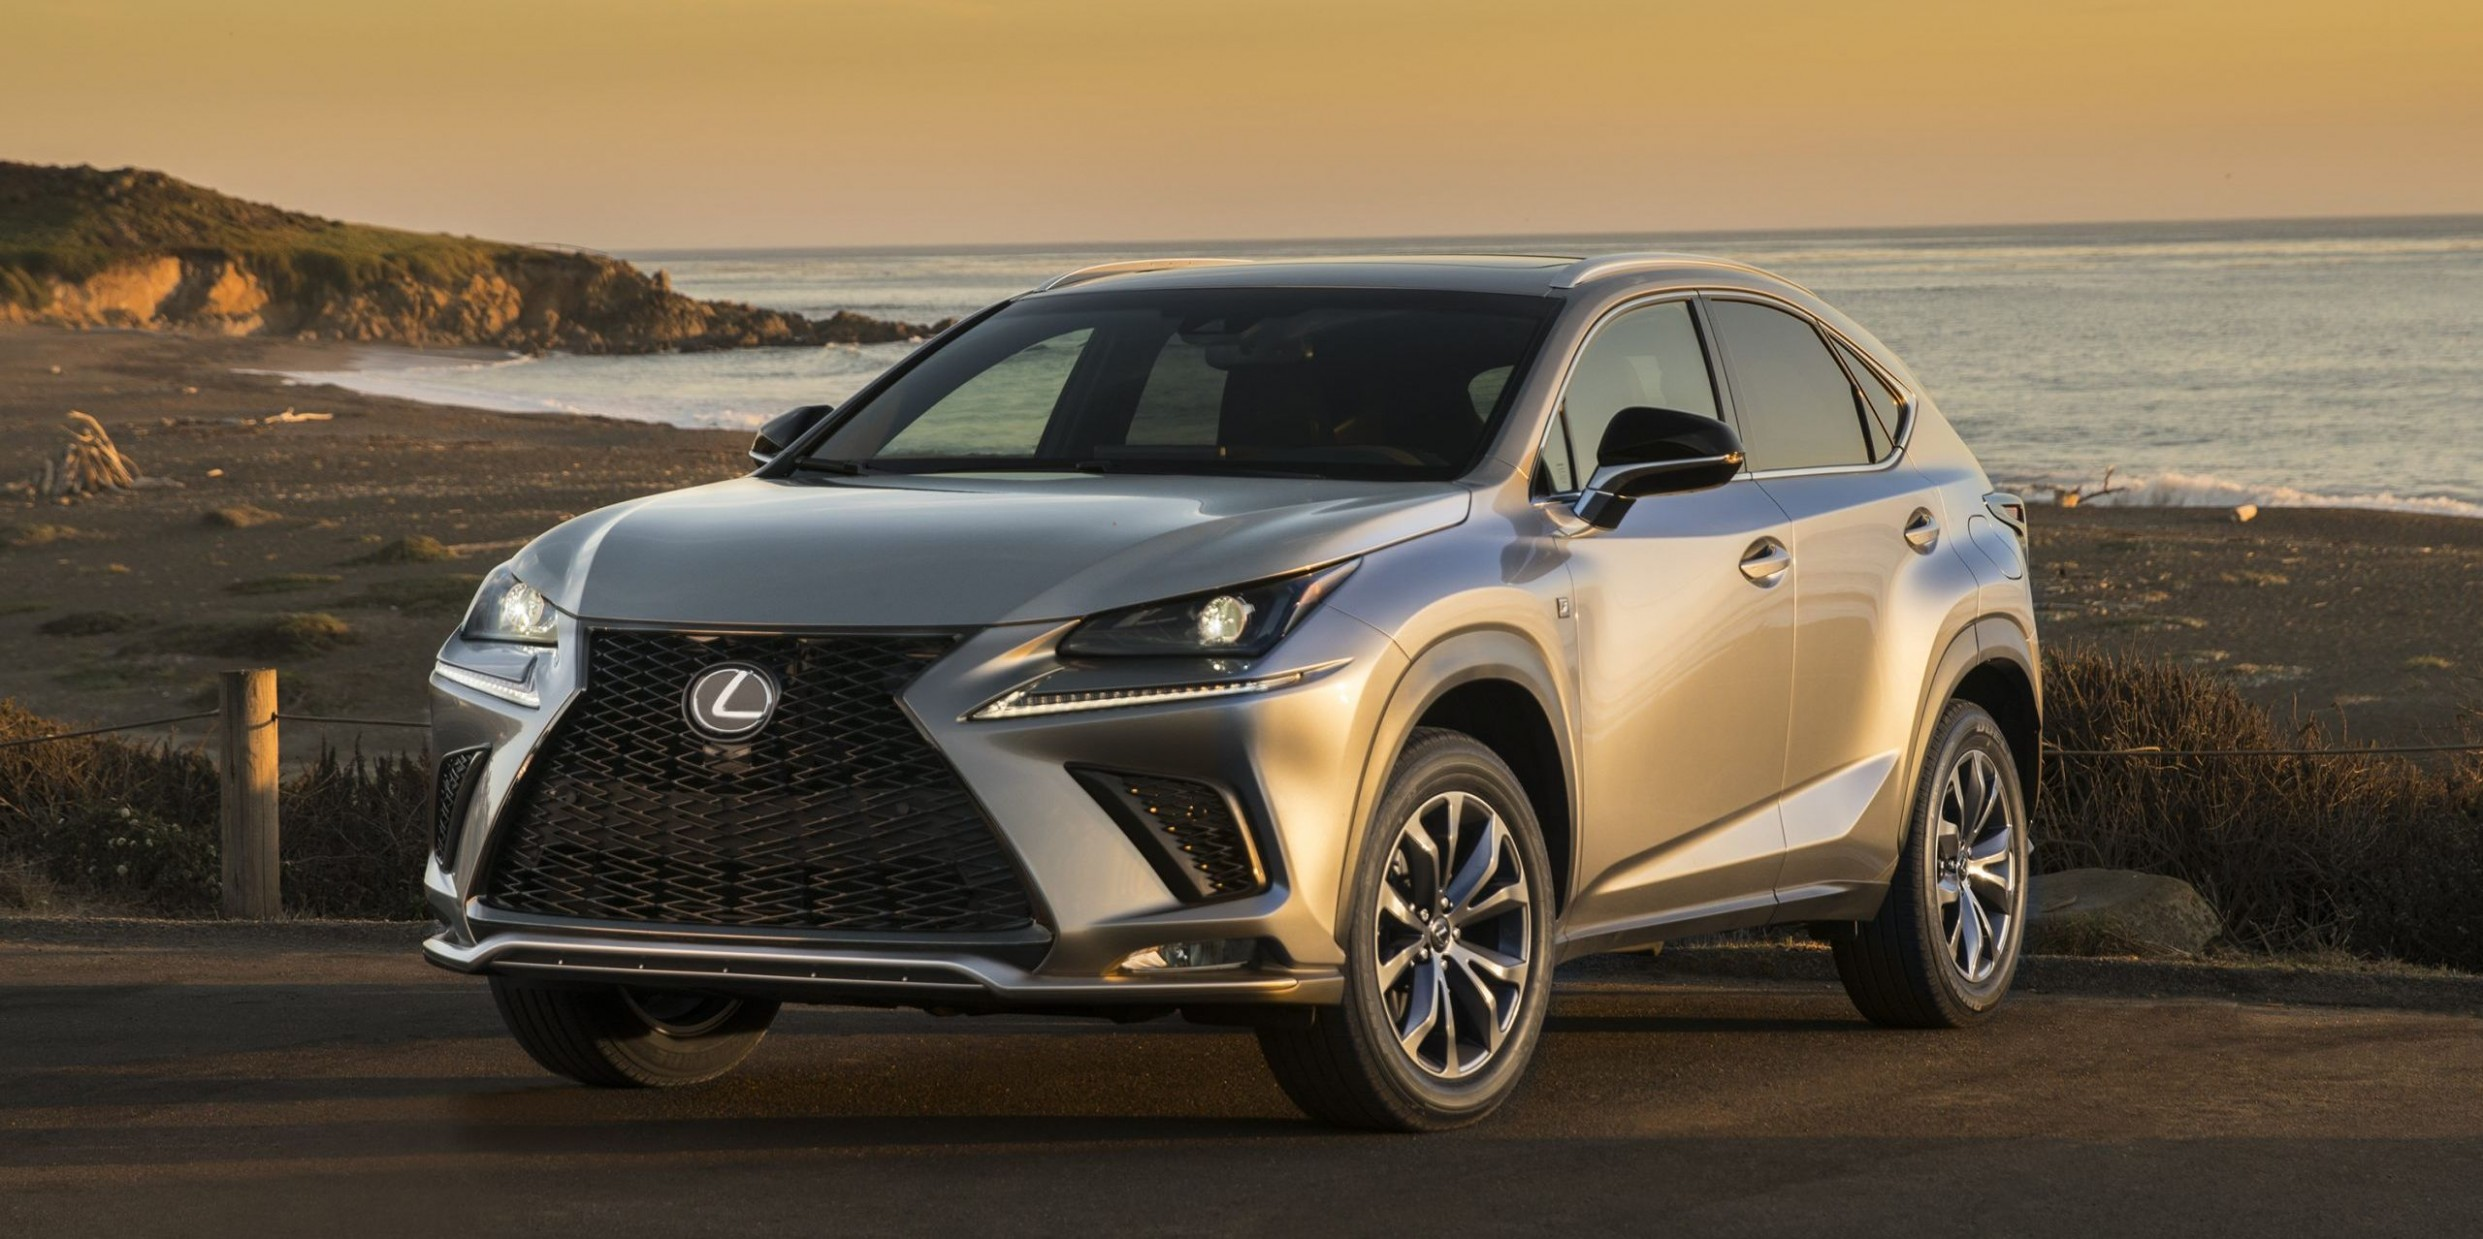 4 Lexus NX Review, Pricing, and Specs